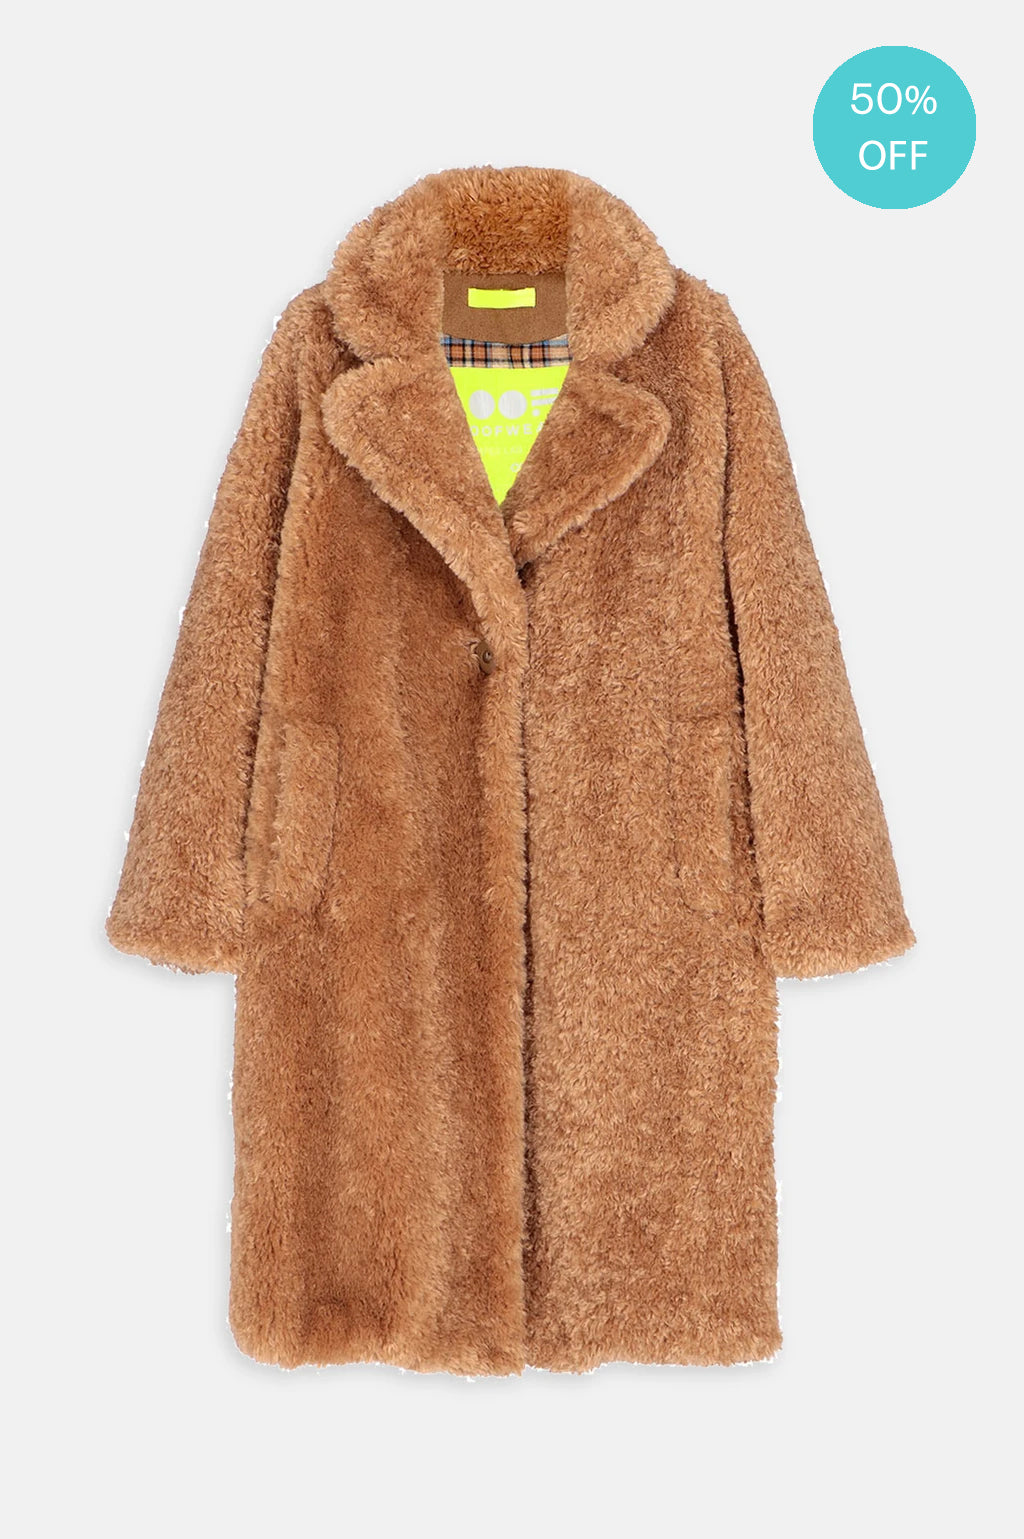 Teddy Coat in Camel